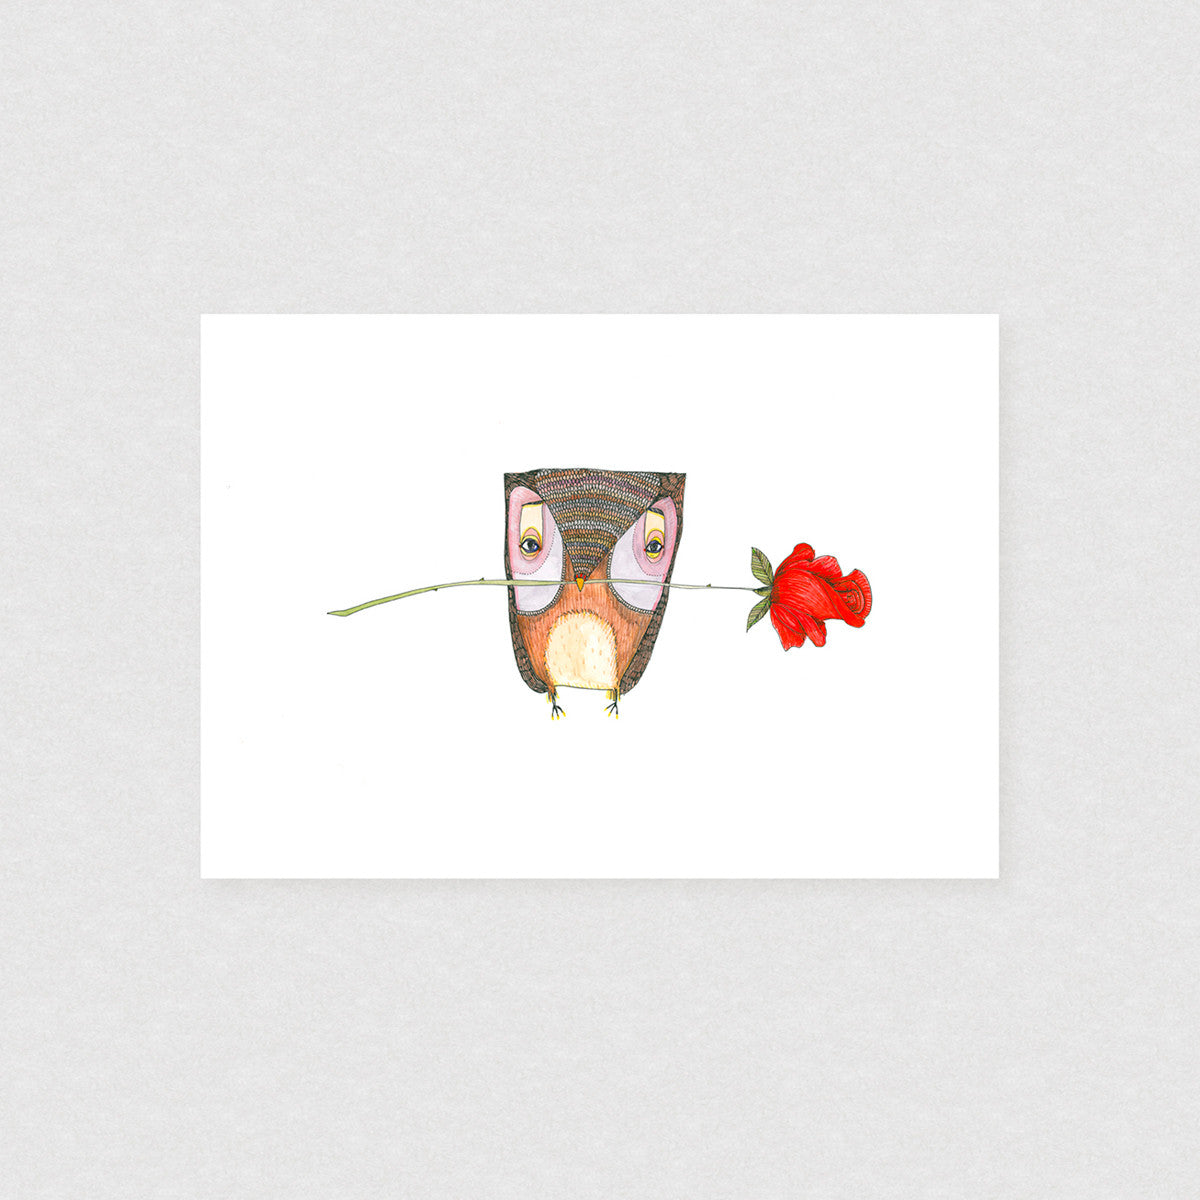 Hopeless Romantic - Limited Edition Print | by Natalie Martin - Unframed Prints - Throw Some Seeds - Australian gardening gifts and eco products online!